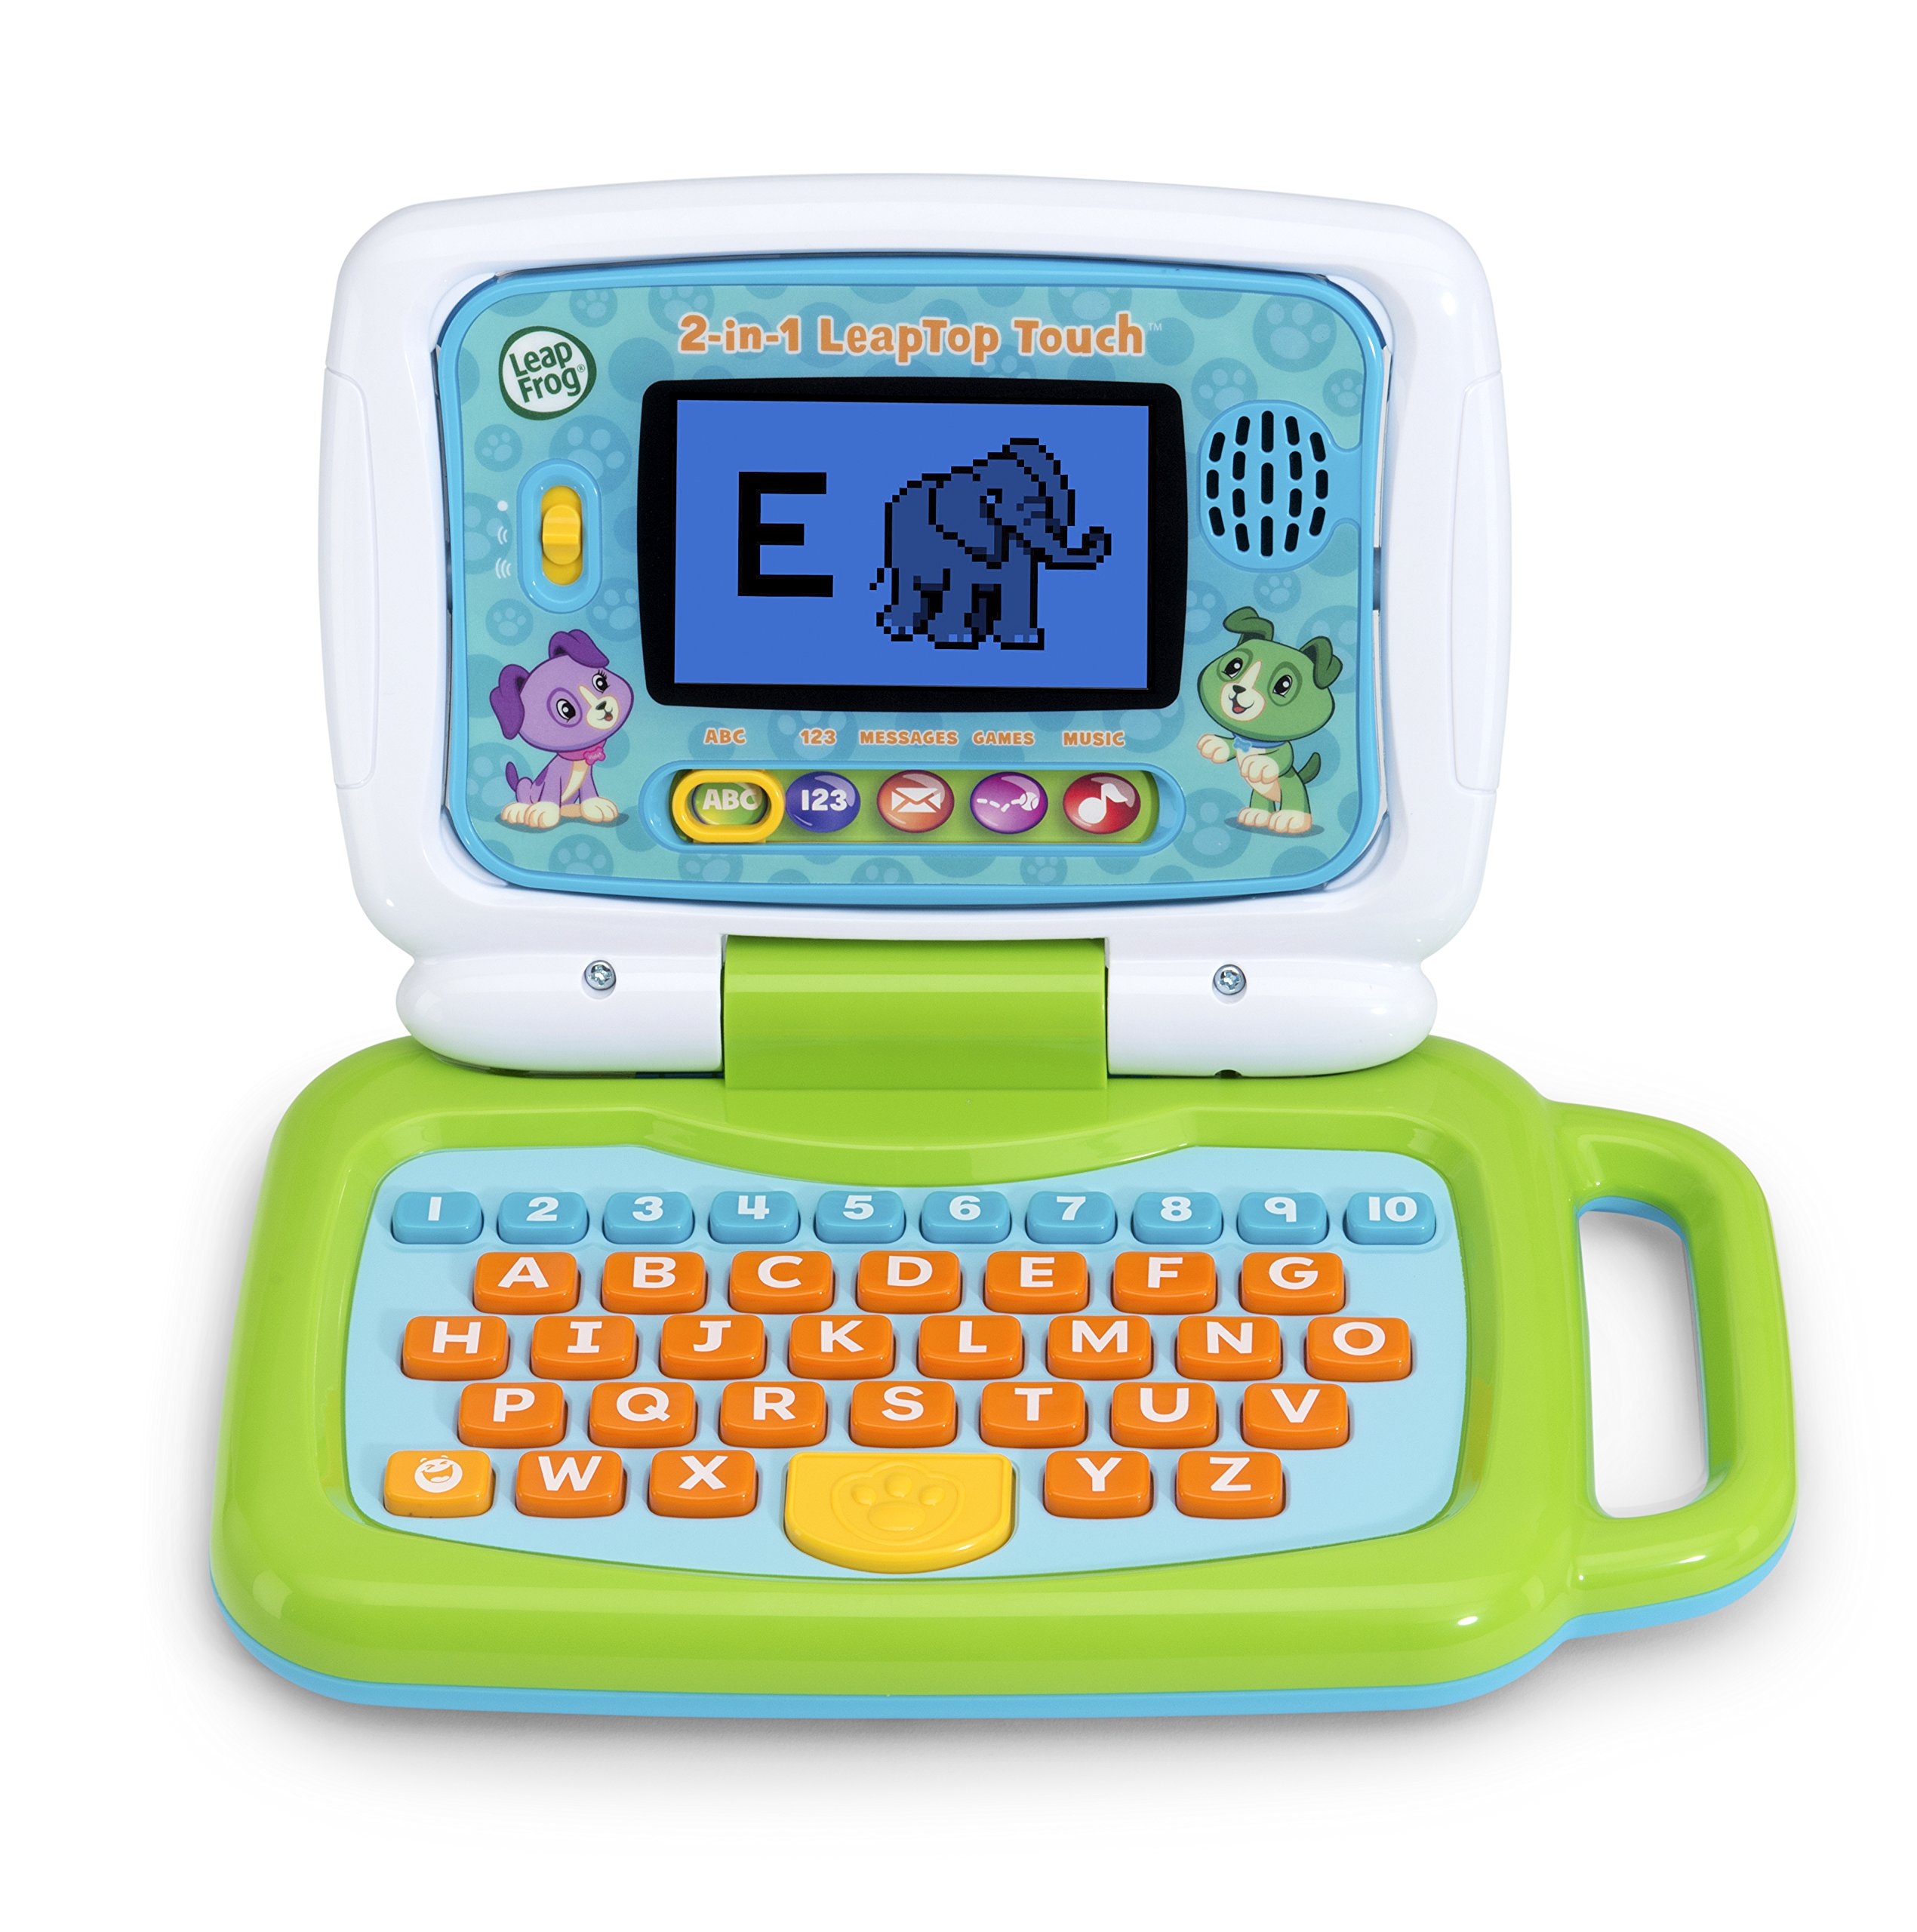 LeapFrog 2-in-1 LeapTop Touch by LeapFrog